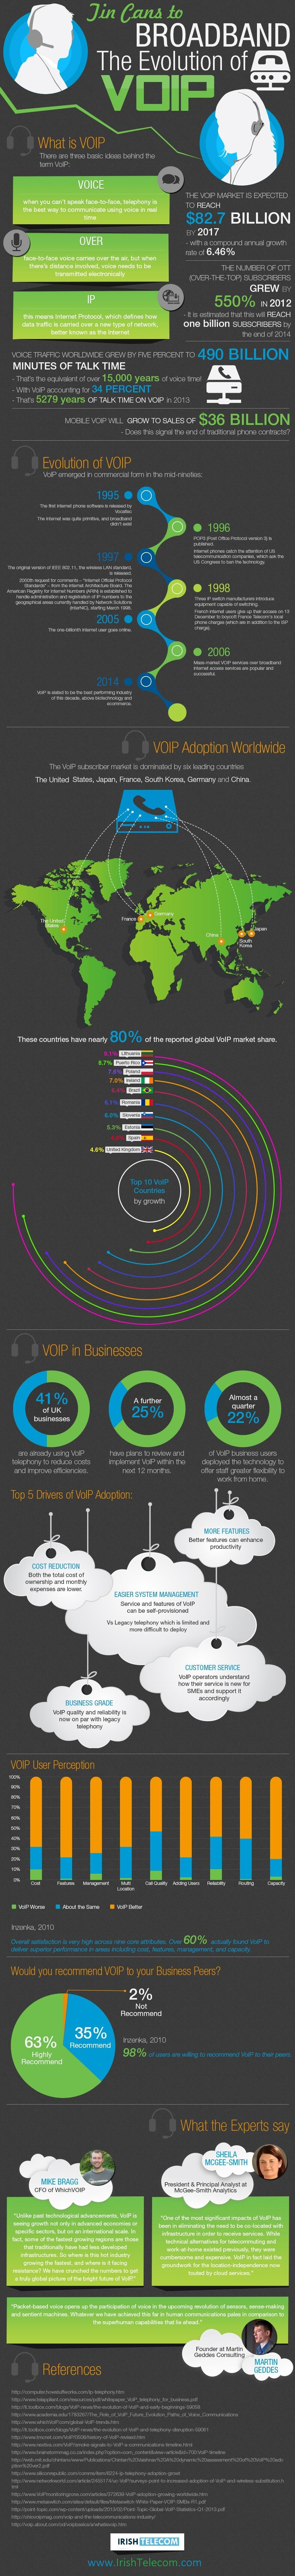 Irish-Telecoms-Evolution-of-VoIP-Infographic